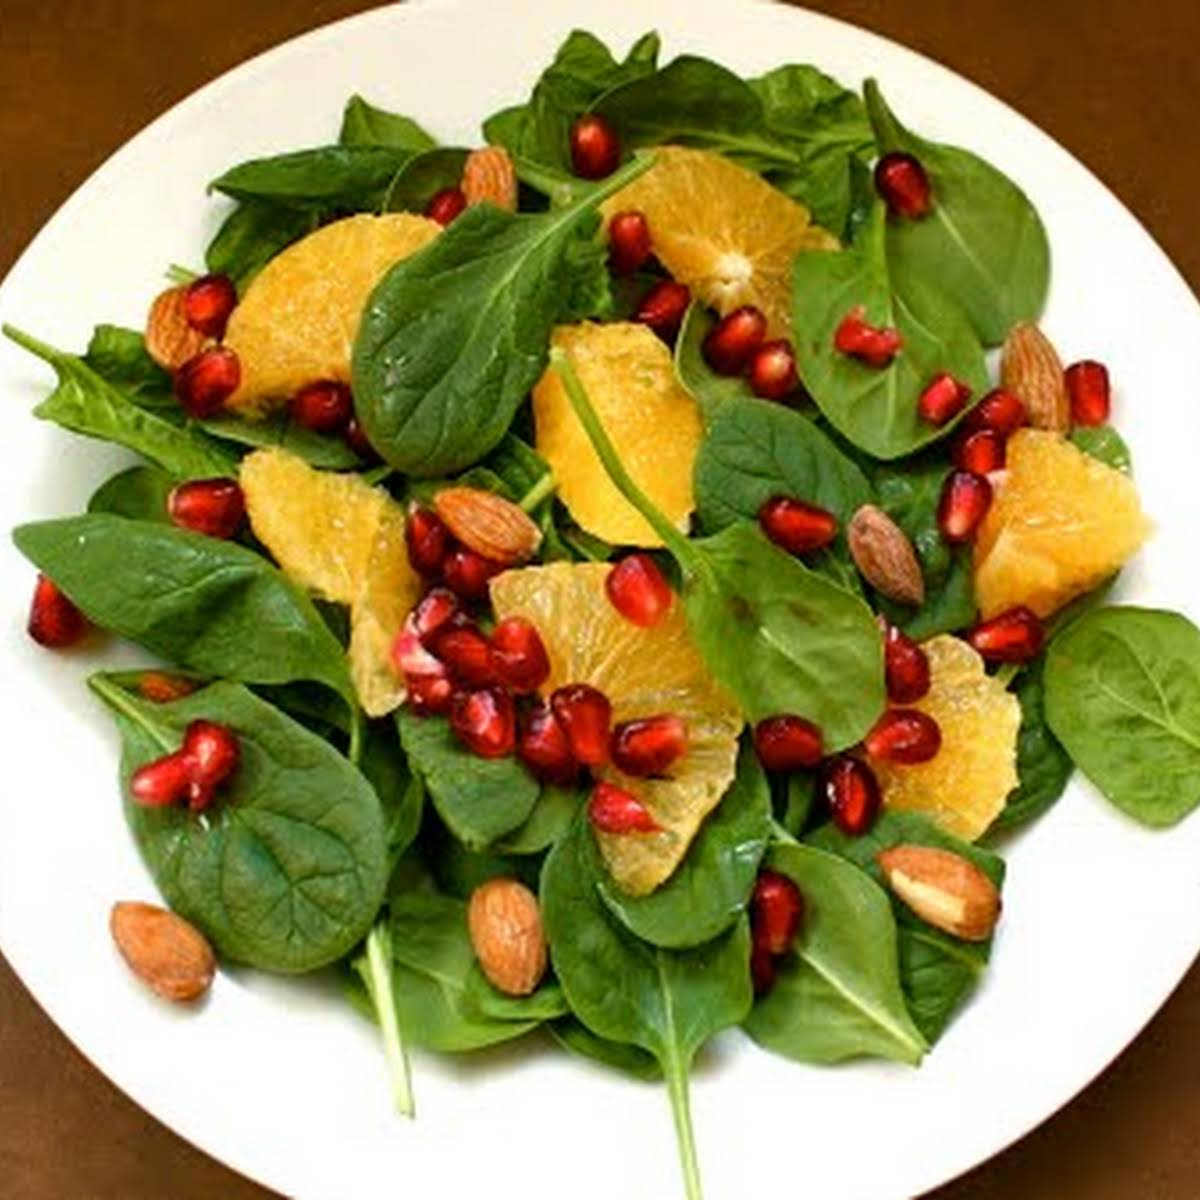 Spinach Salad  past Oranges, Pomegranate, and Almonds